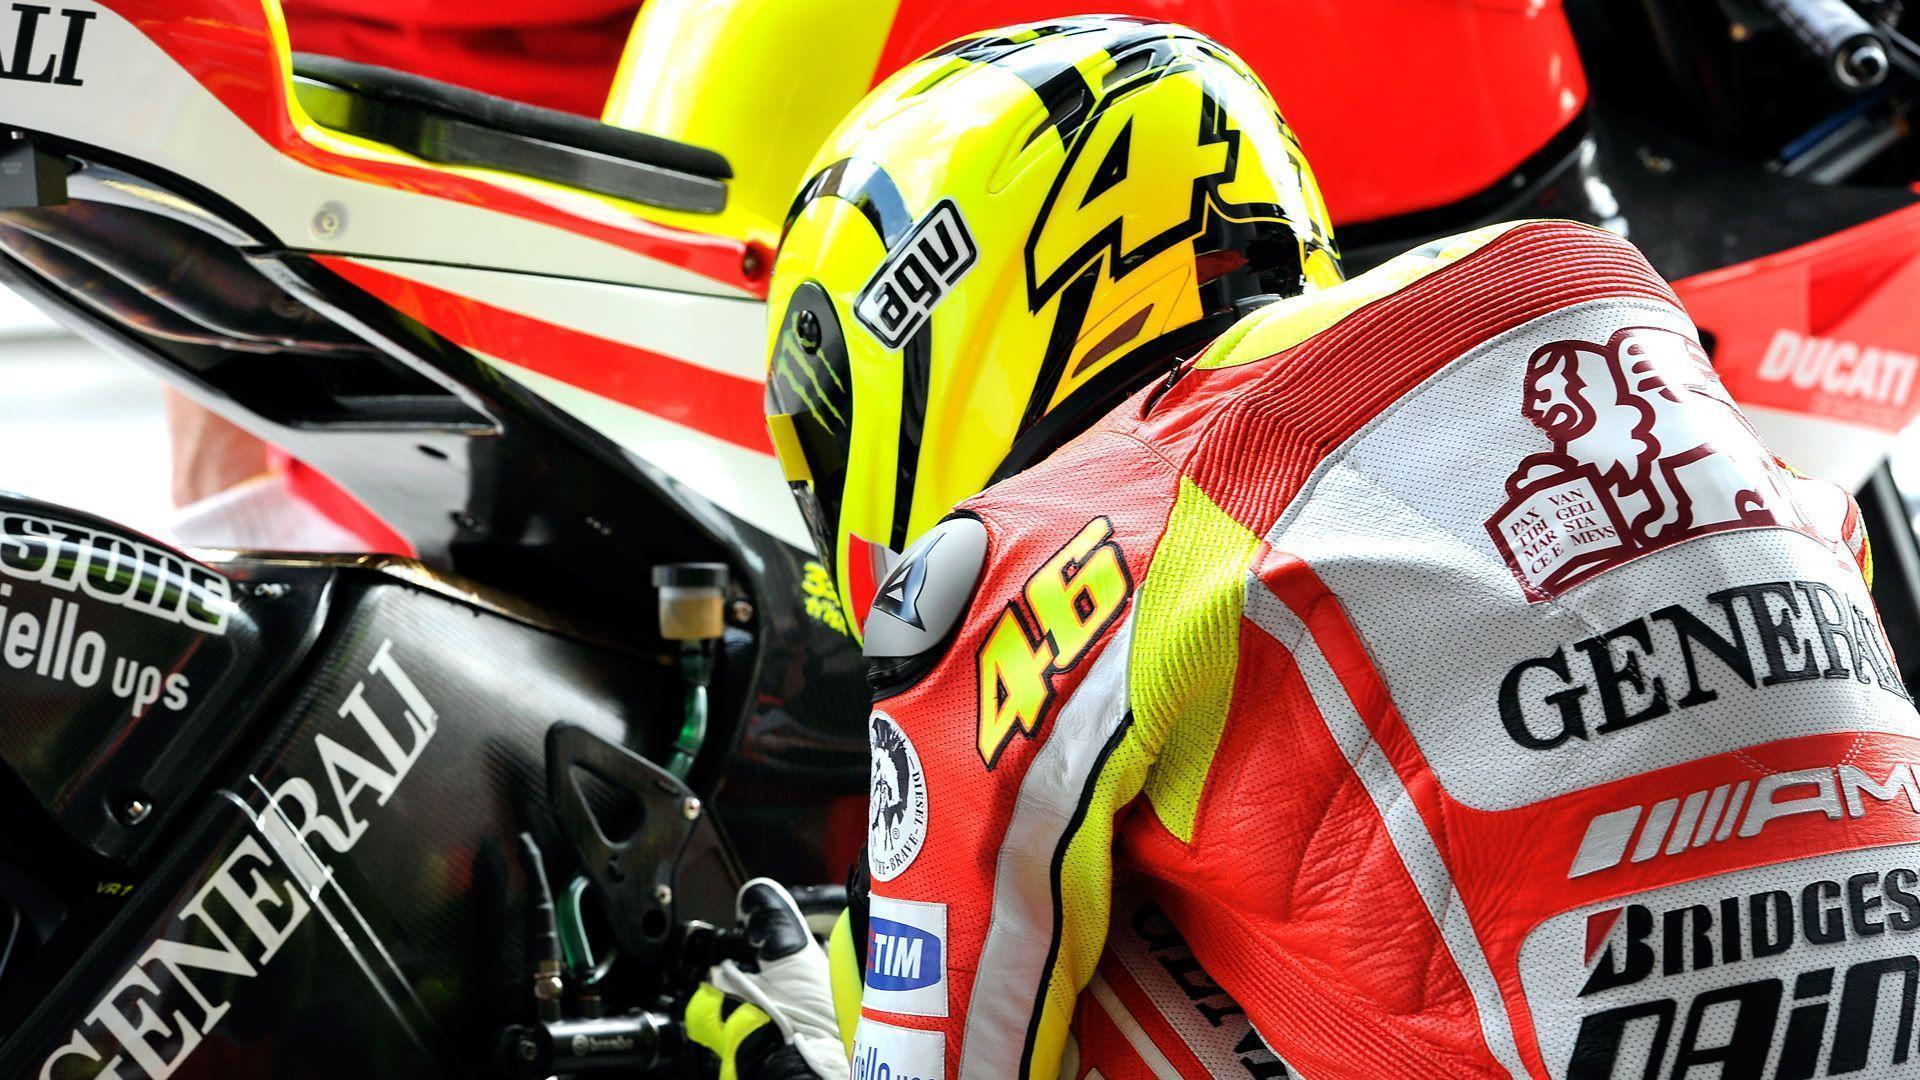 Vr 46 | Best Wallpapers